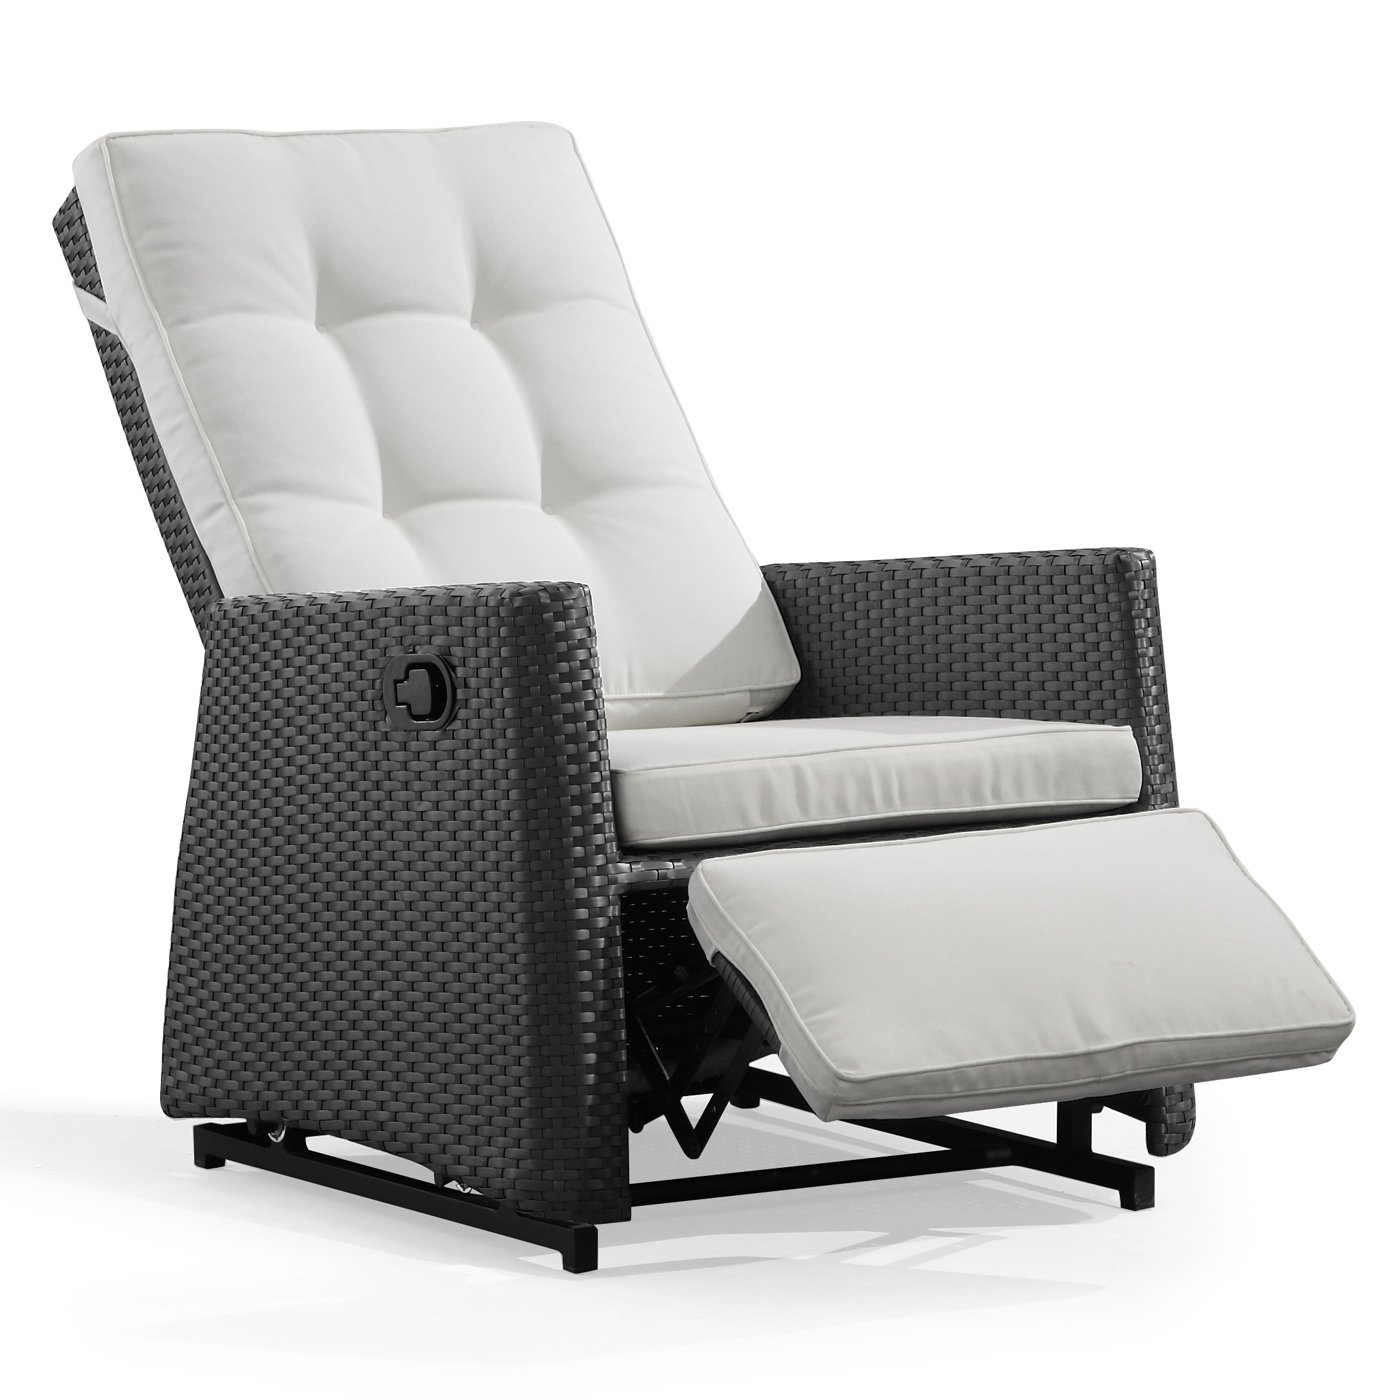 Image of: New Rocking Recliner Chair